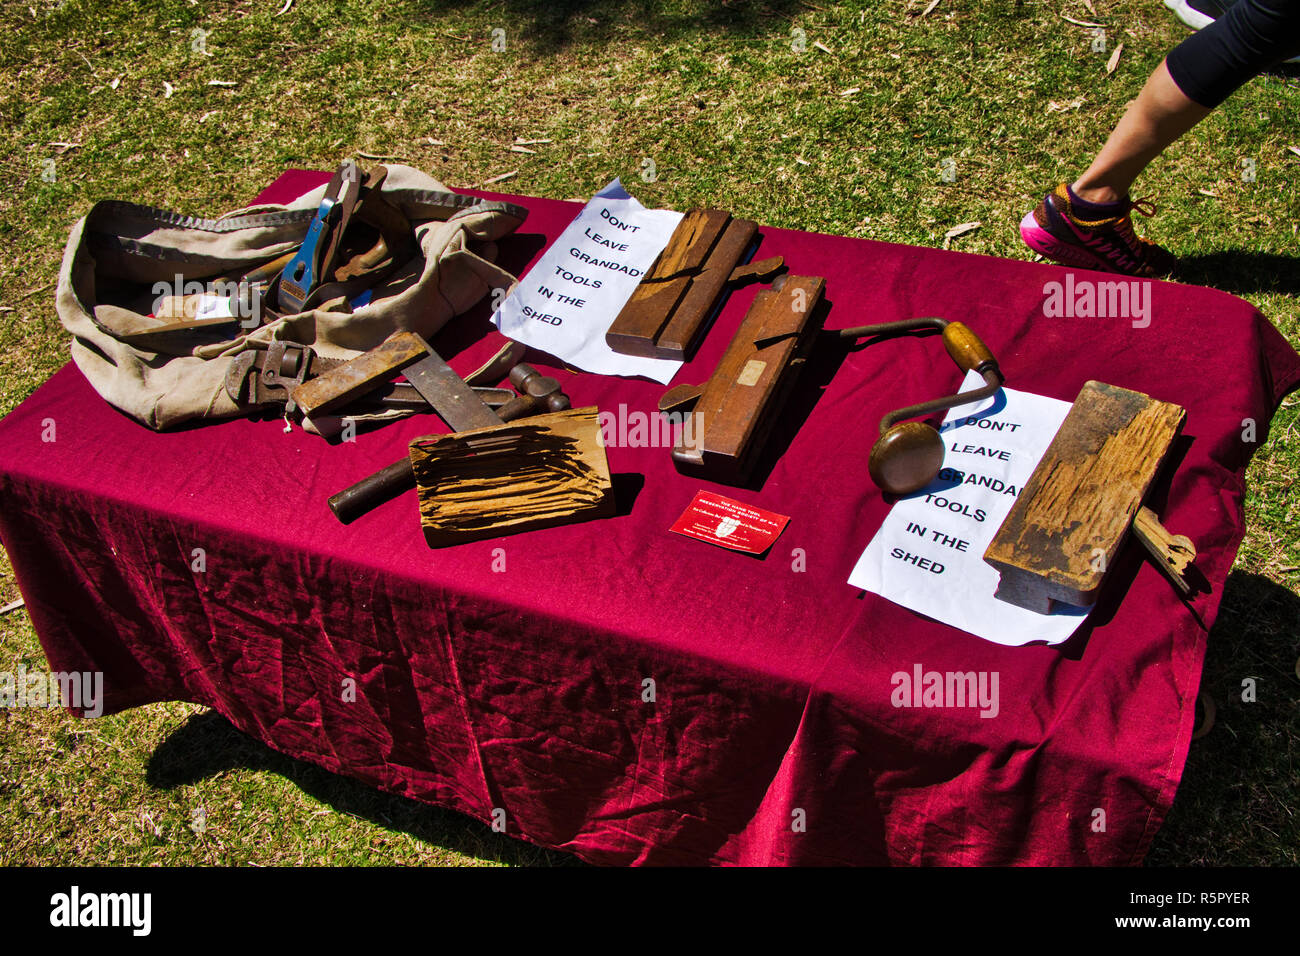 Hand tool preservation society display on have a go day - Stock Image